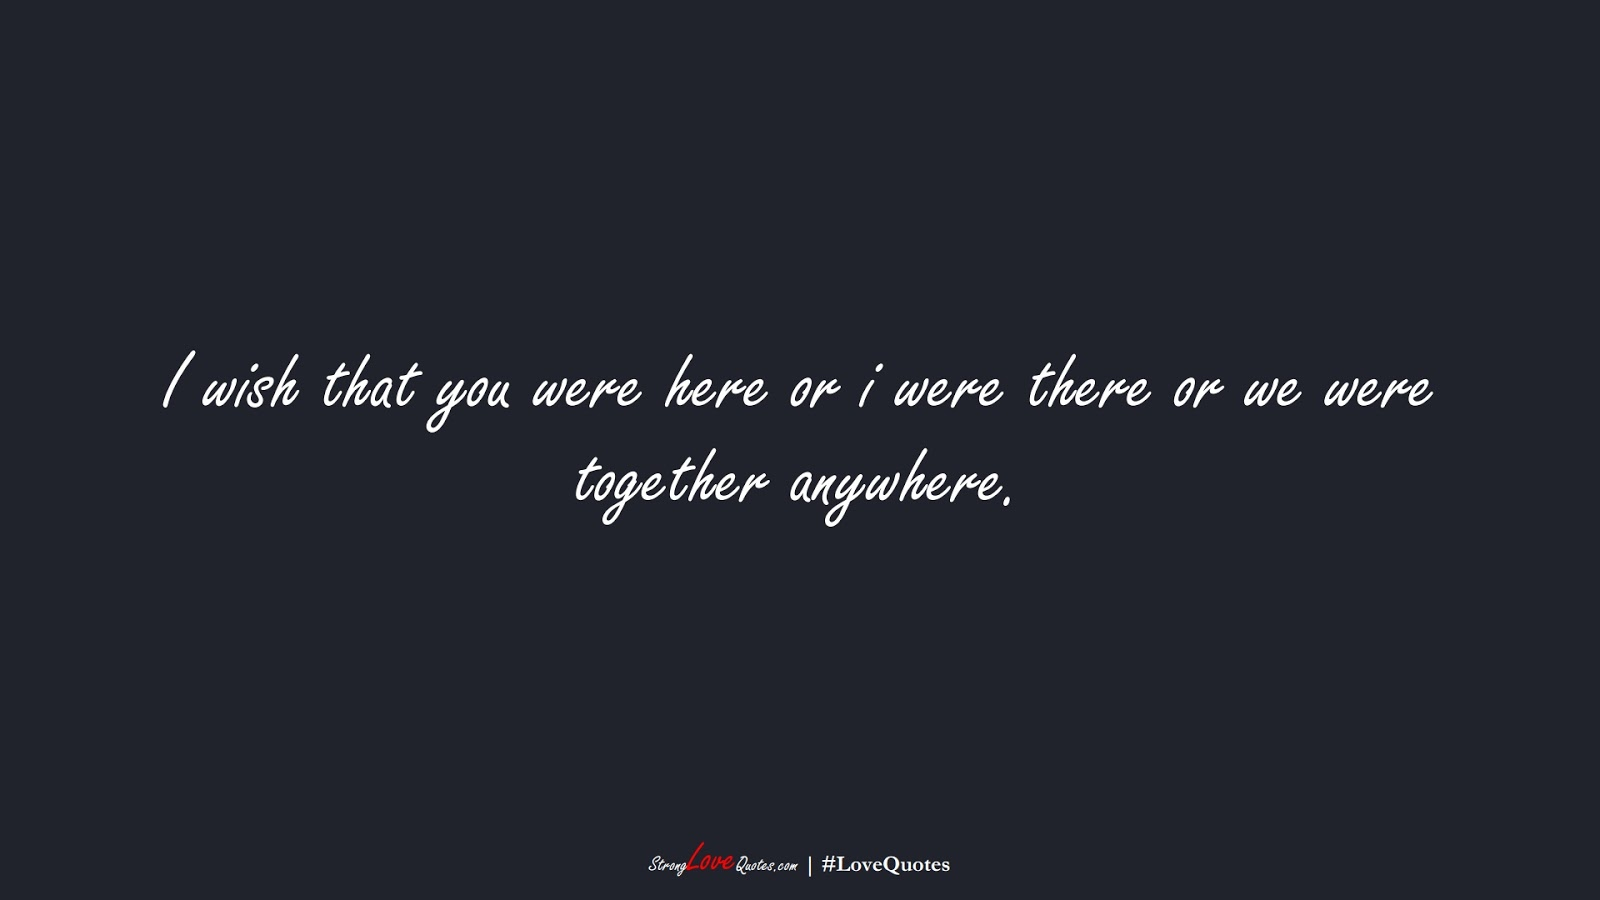 I wish that you were here or i were there or we were together anywhere.FALSE